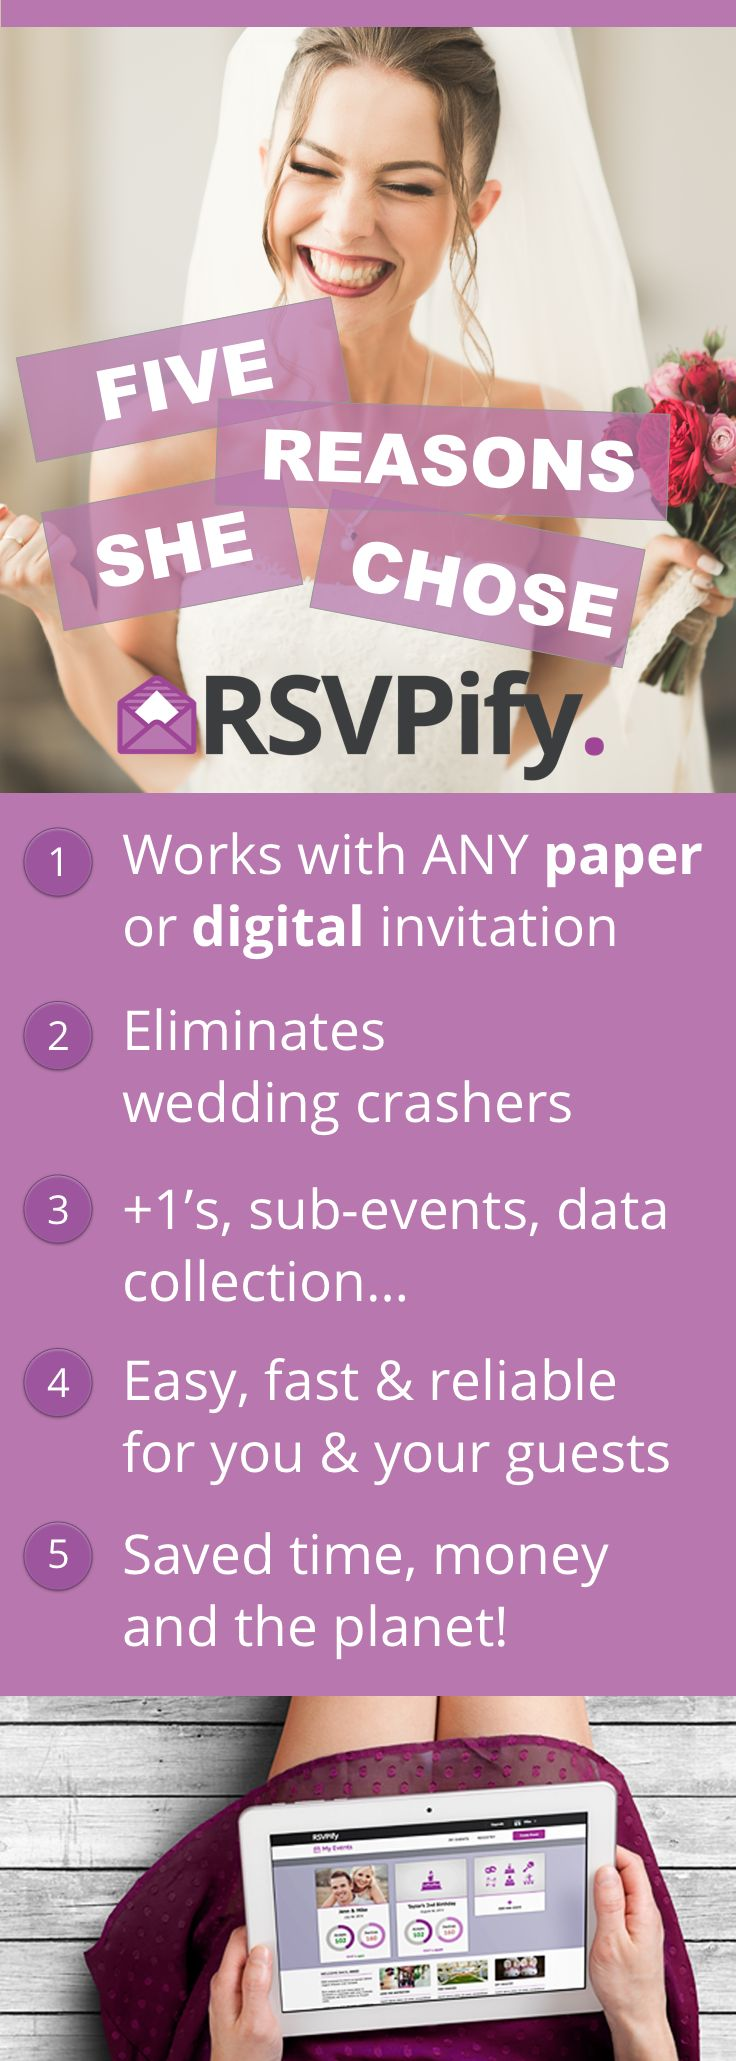 RSVPify is the #1 free way to collect RSVPs for your wedding.    It works with ANY paper or digital invitation, and helps you save time, money and the planet...all at the same time!  Don't make the mistake of 'snail mail' RSVPs or the basic RSVP tool that come with your wedding website.  #weddingrsvp #wedding #weddinginvitation